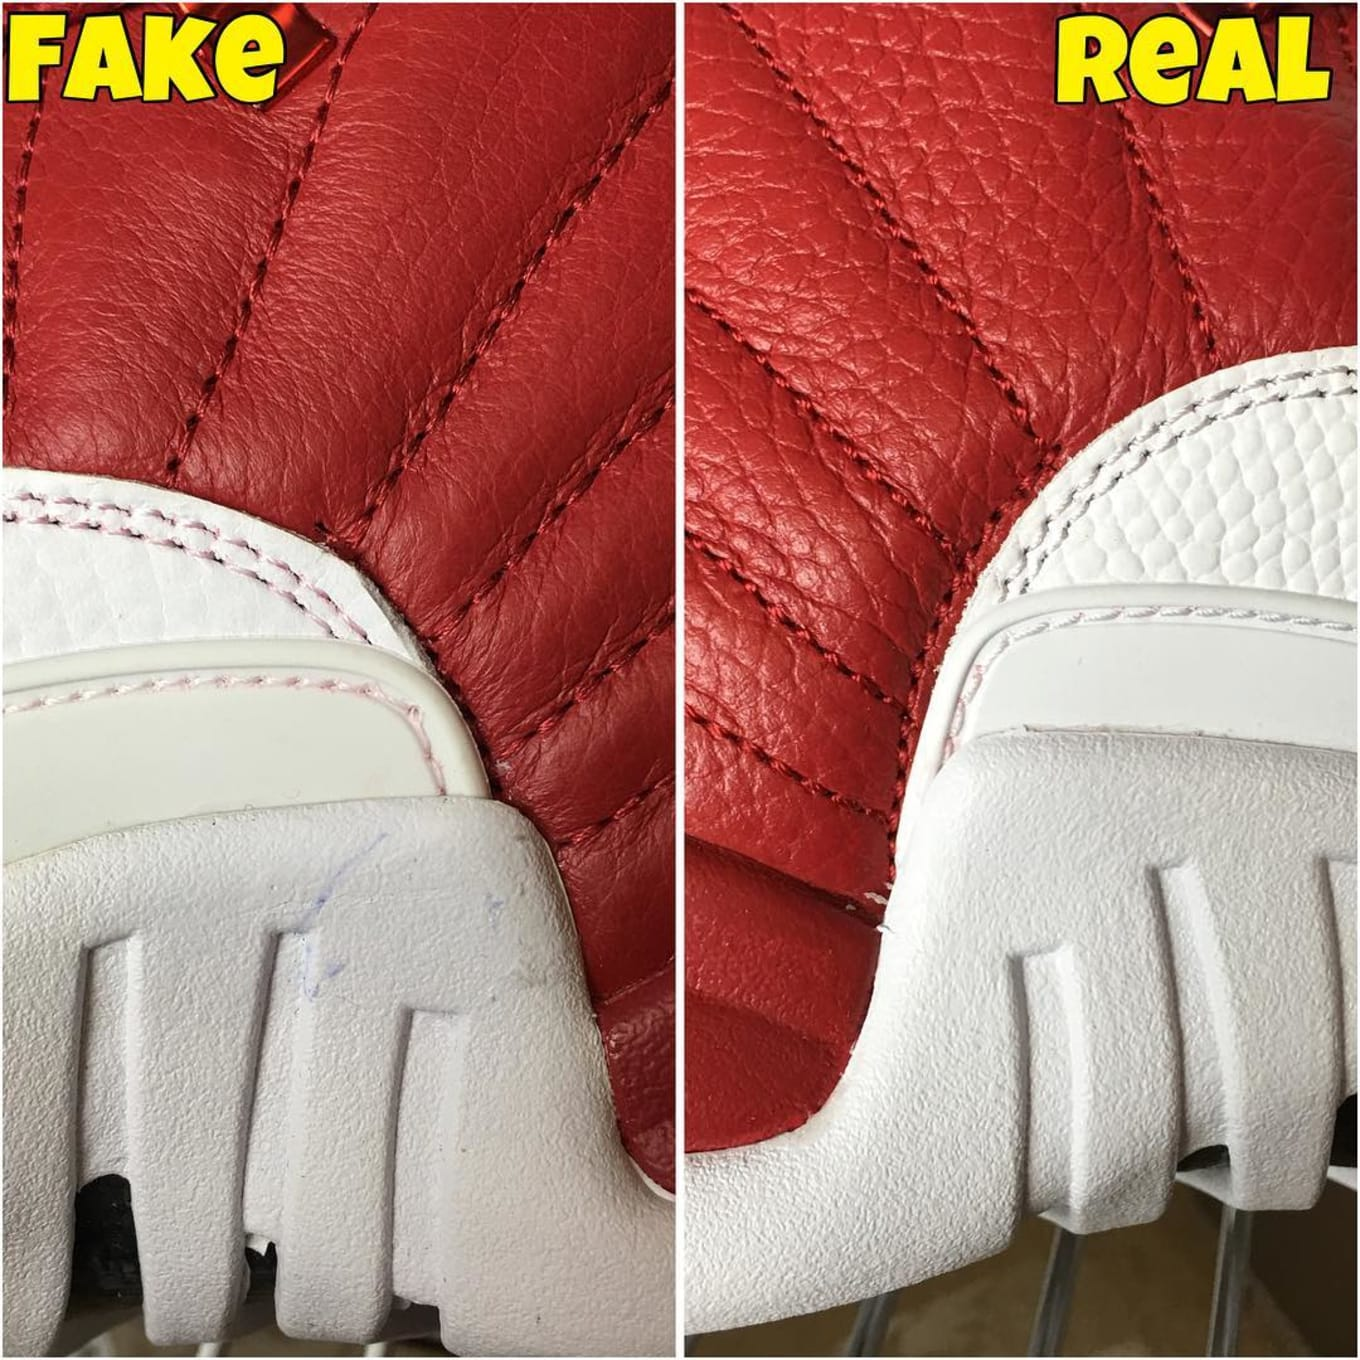 best service 1c774 a11fb Air Jordan XII 12 Gym Red Alternate Real Fake Legit Check (8)